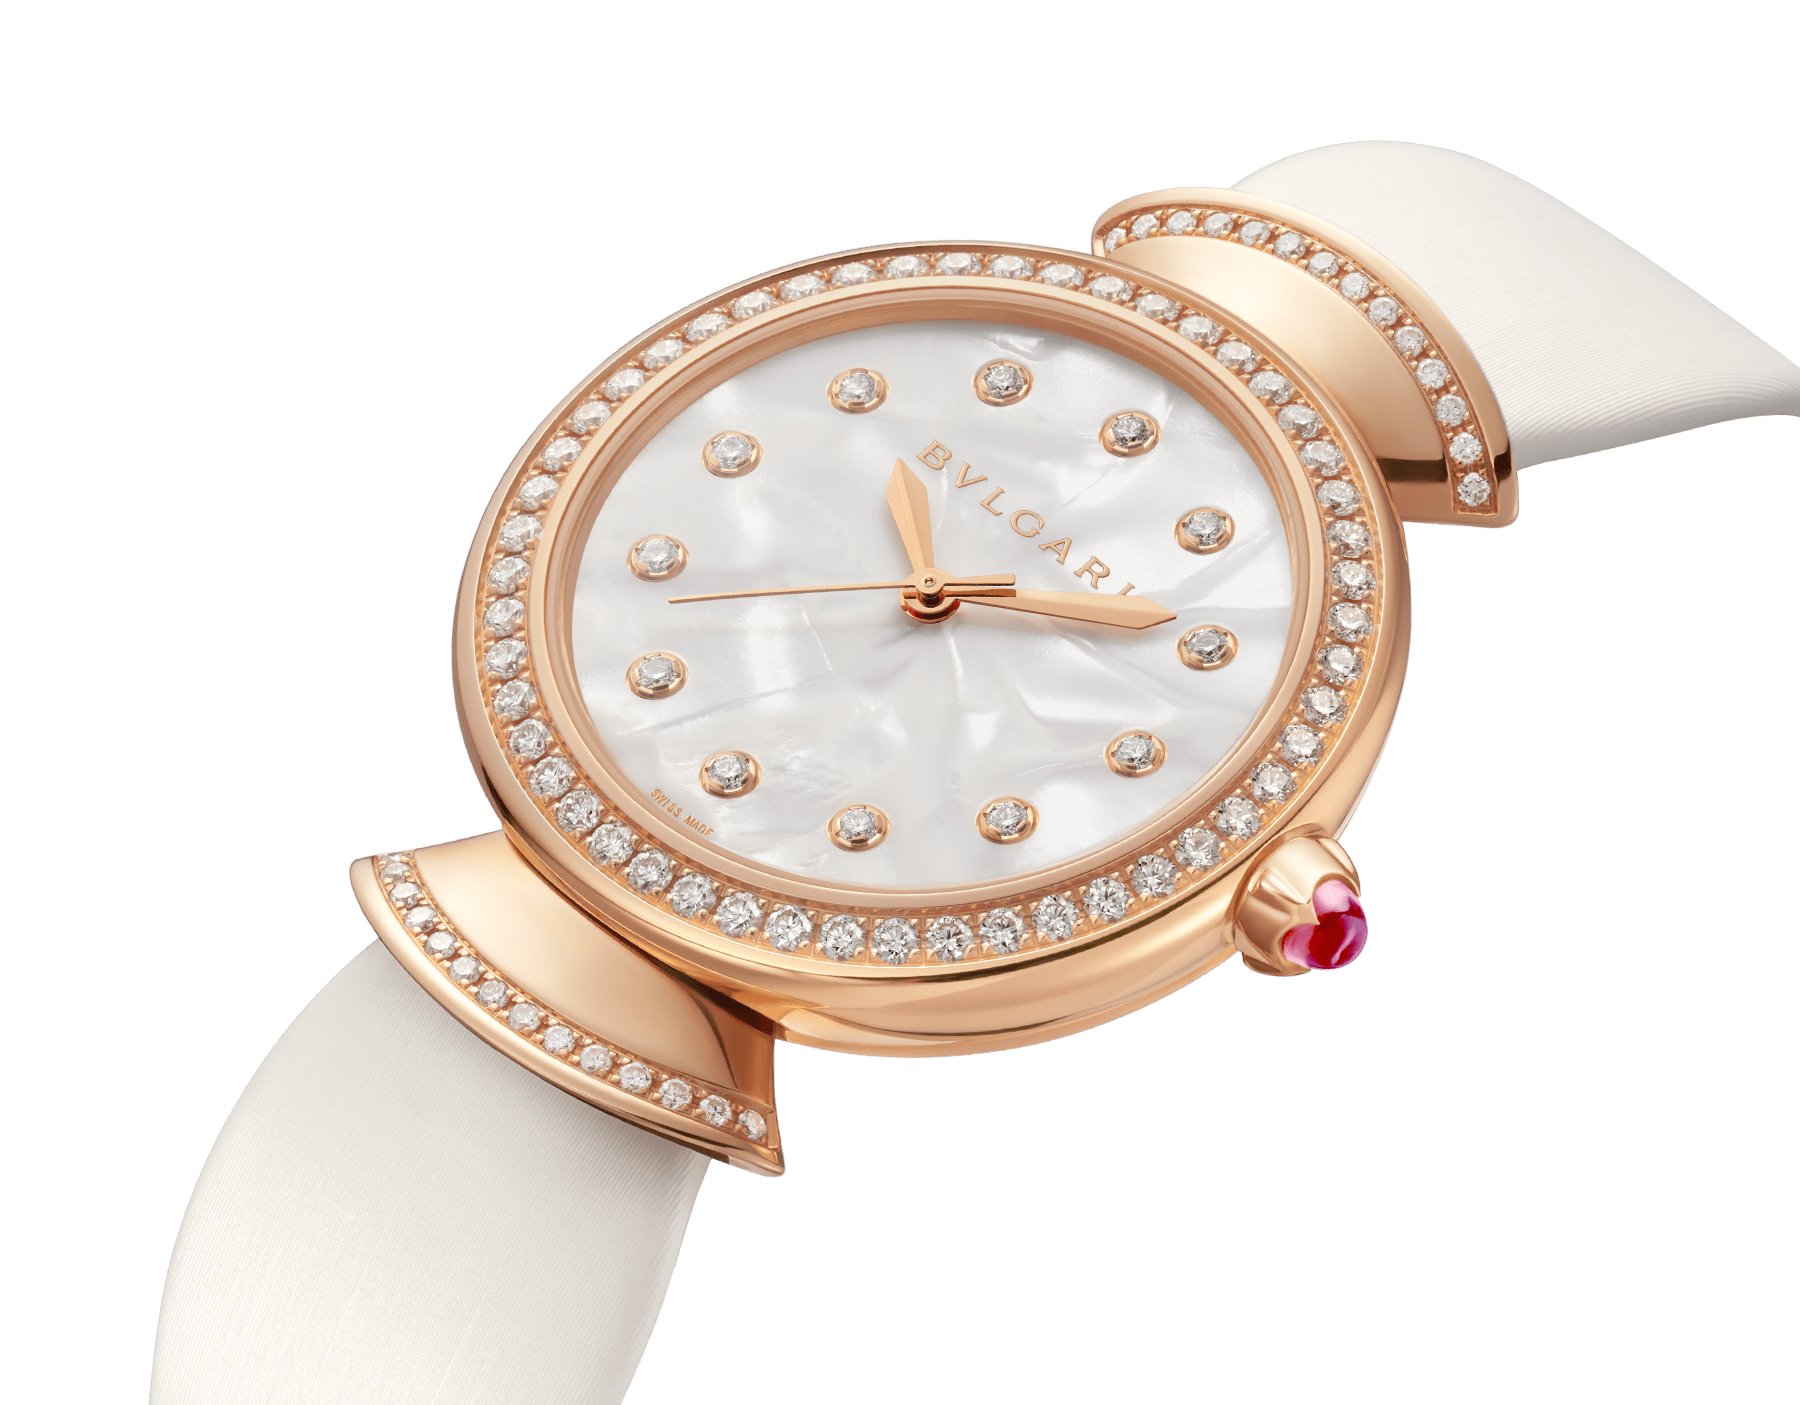 DIVAS' DREAM watch with 18 kt rose gold case set with brilliant-cut diamonds, acetate dial, diamond indexes and white satin bracelet 102575 image 2